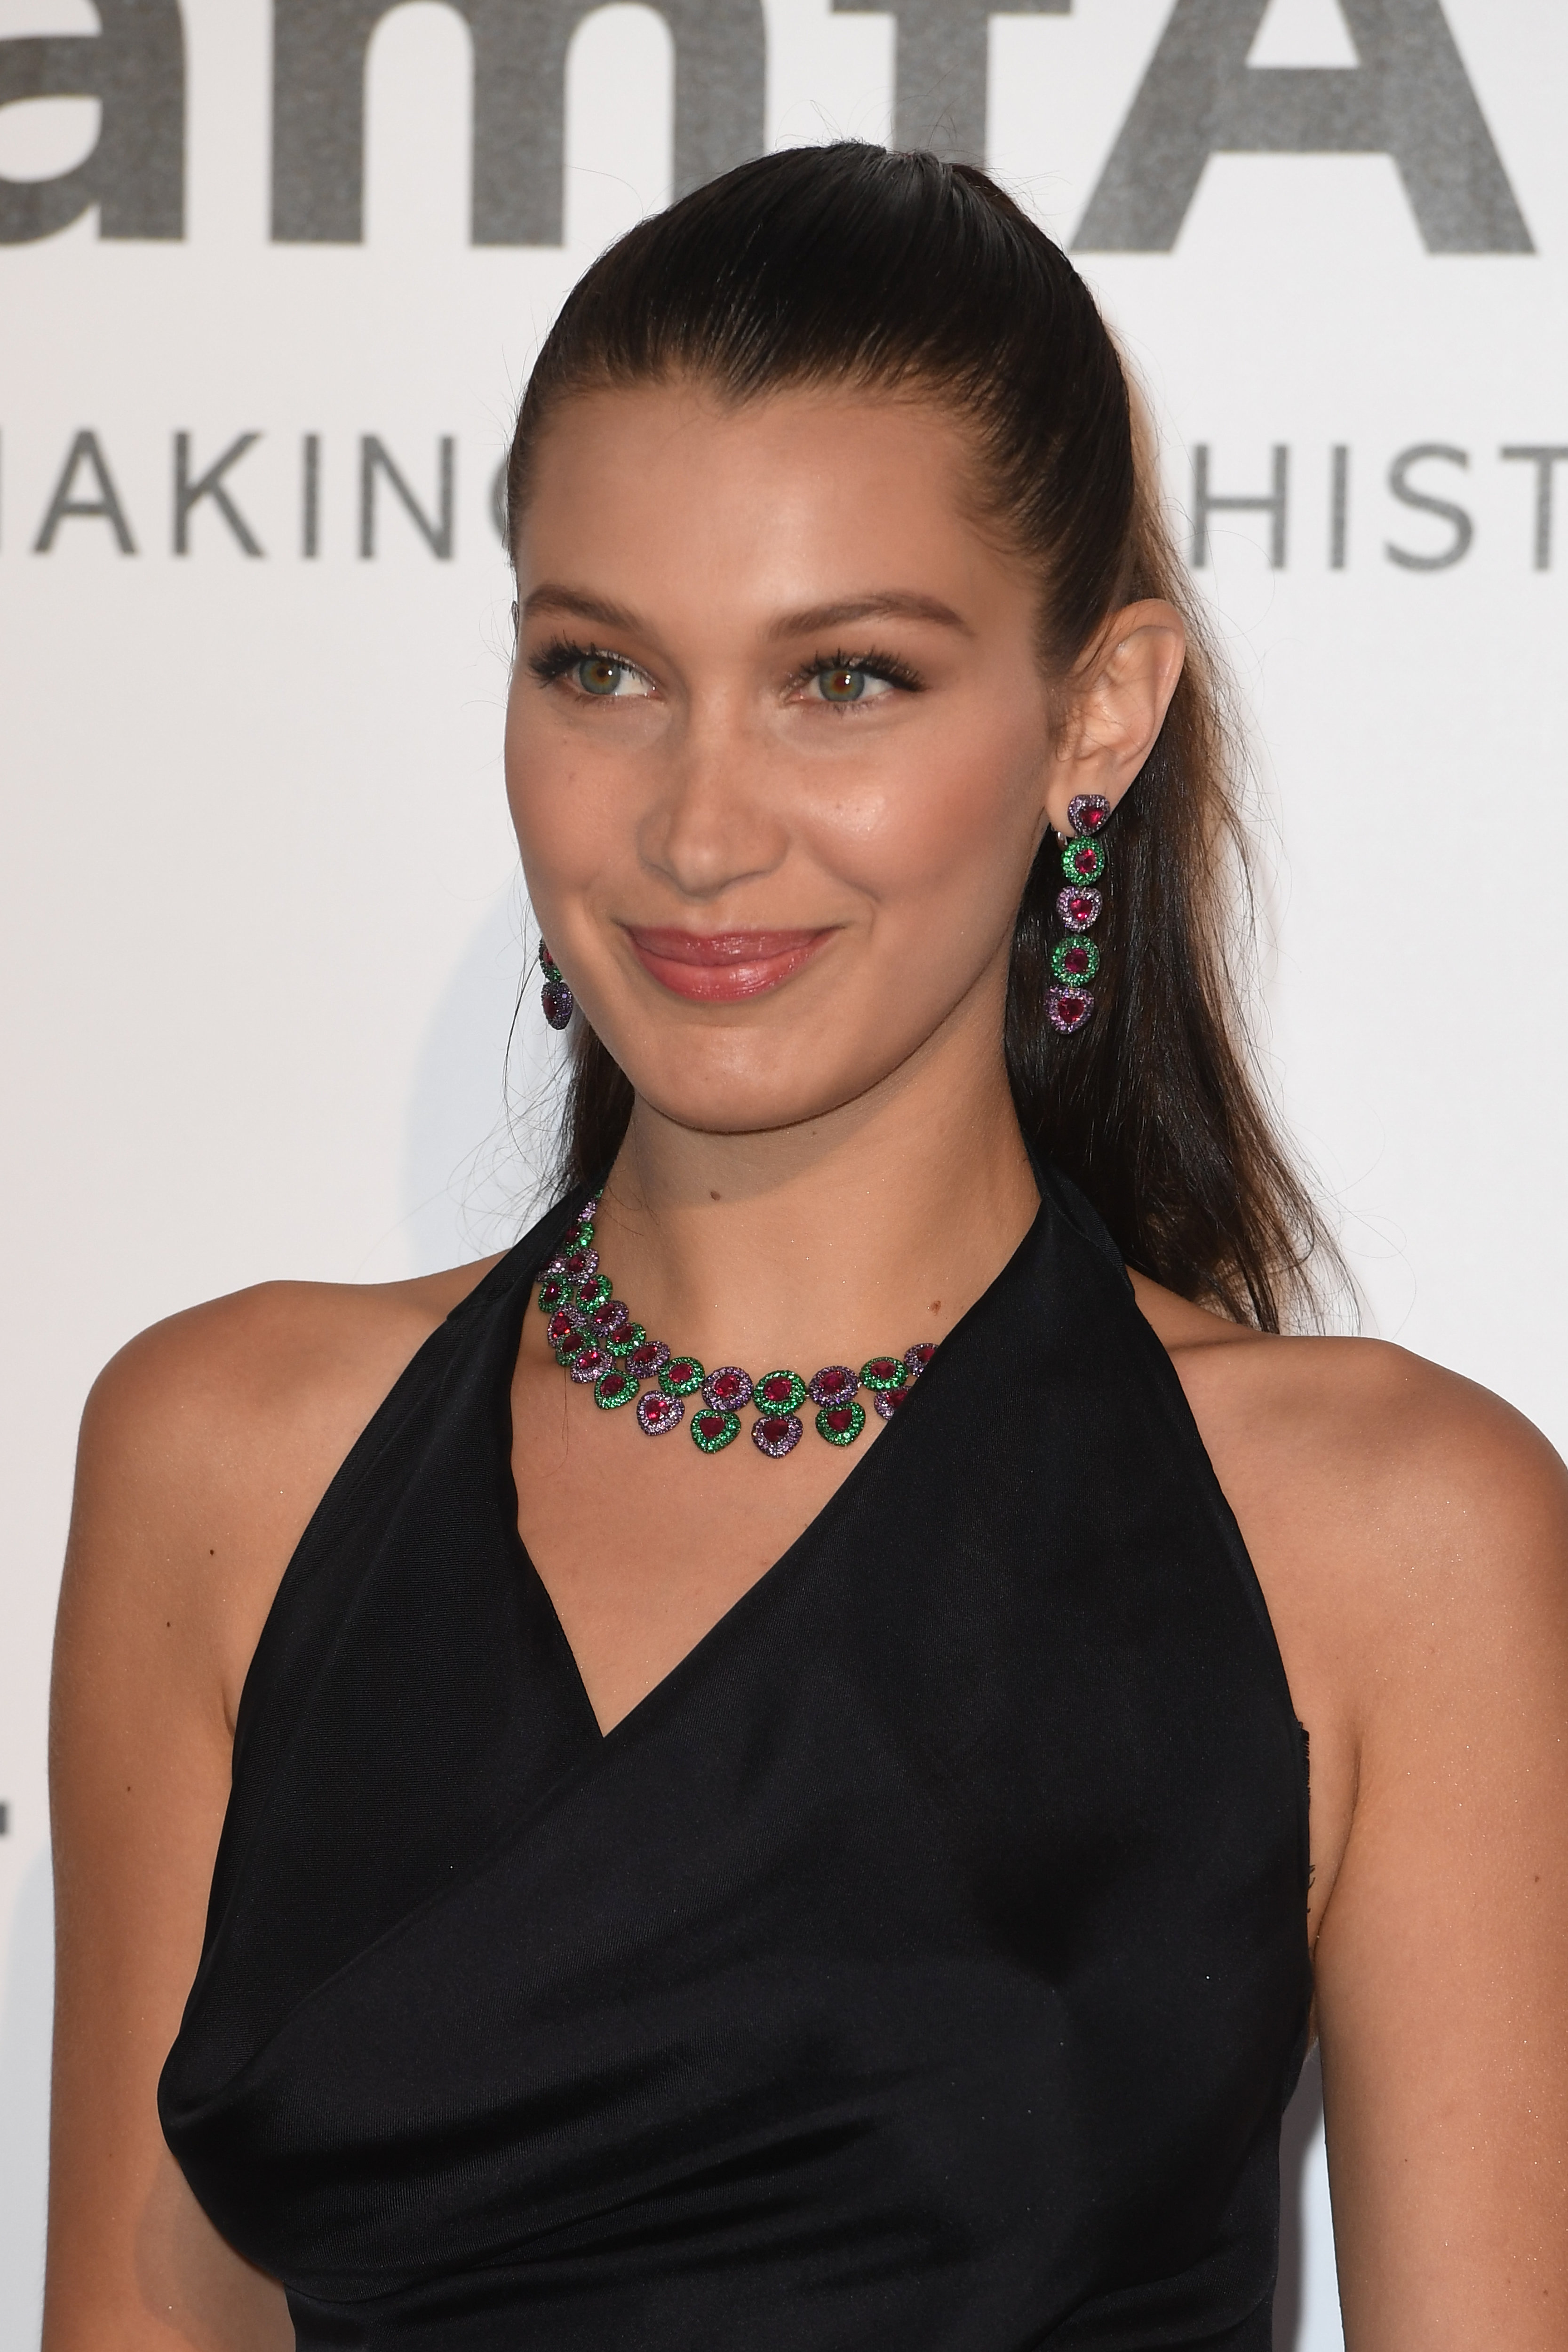 CAP D'ANTIBES, FRANCE - MAY 19:  Bella Hadid attends the amfAR's 23rd Cinema Against AIDS Gala at Hotel du Cap-Eden-Roc on May 19, 2016 in Cap d'Antibes  (Photo by Venturelli/WireImage)